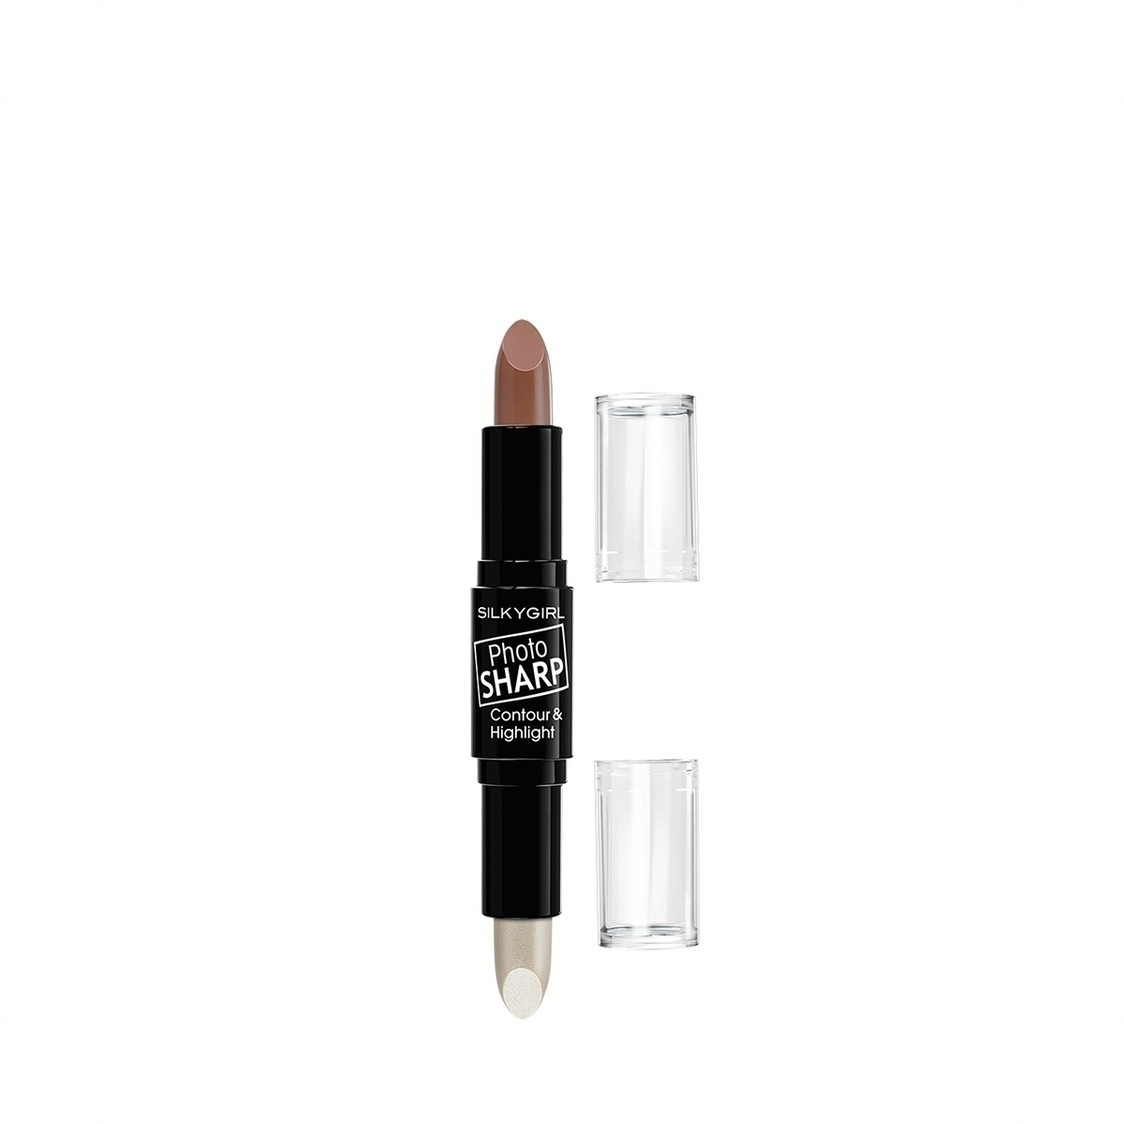 PhotoSharp Contour  Highlight Stick